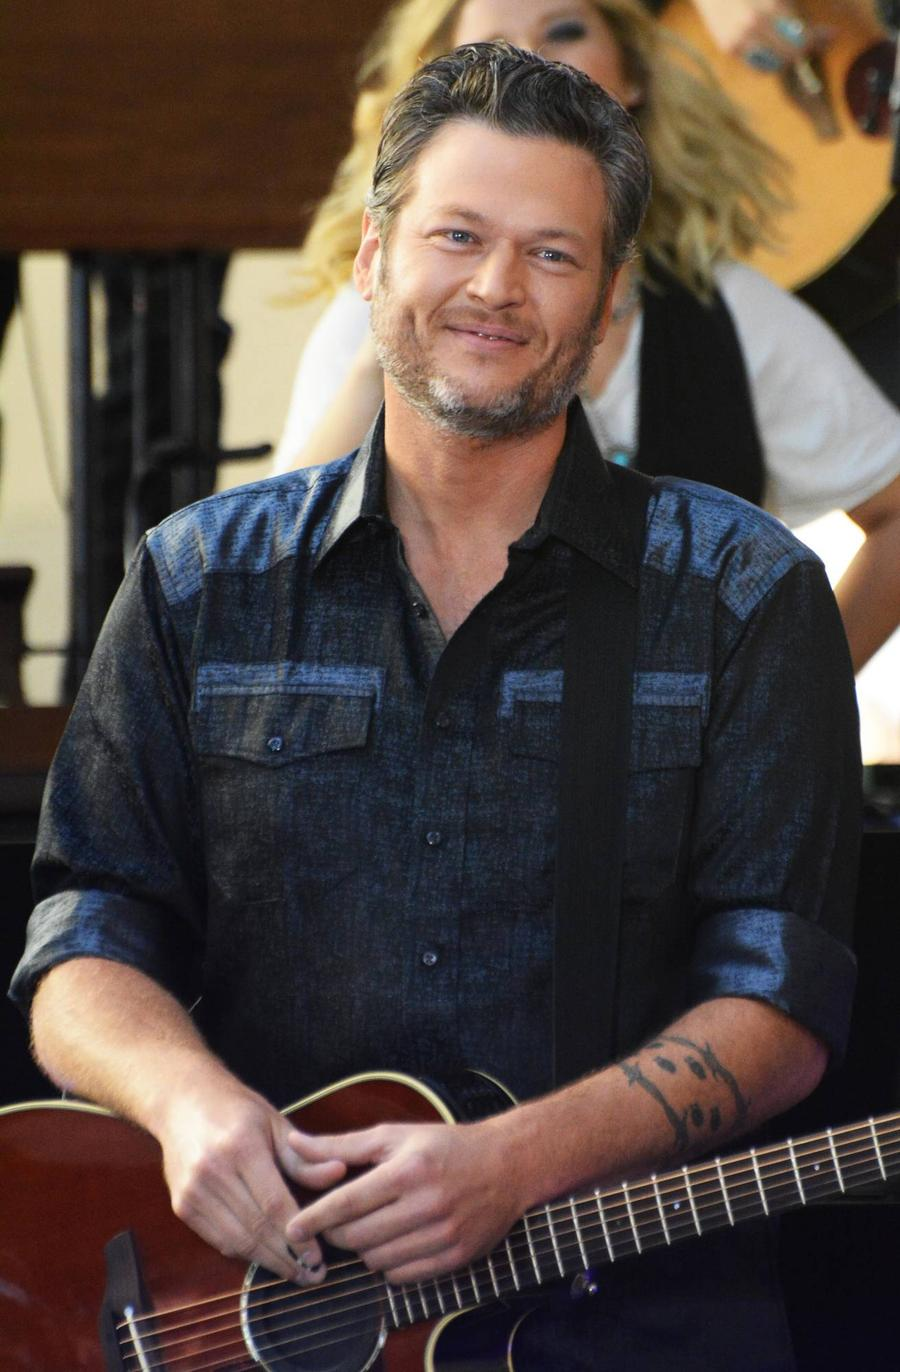 Blake Shelton To Launch New Bar In Nashville